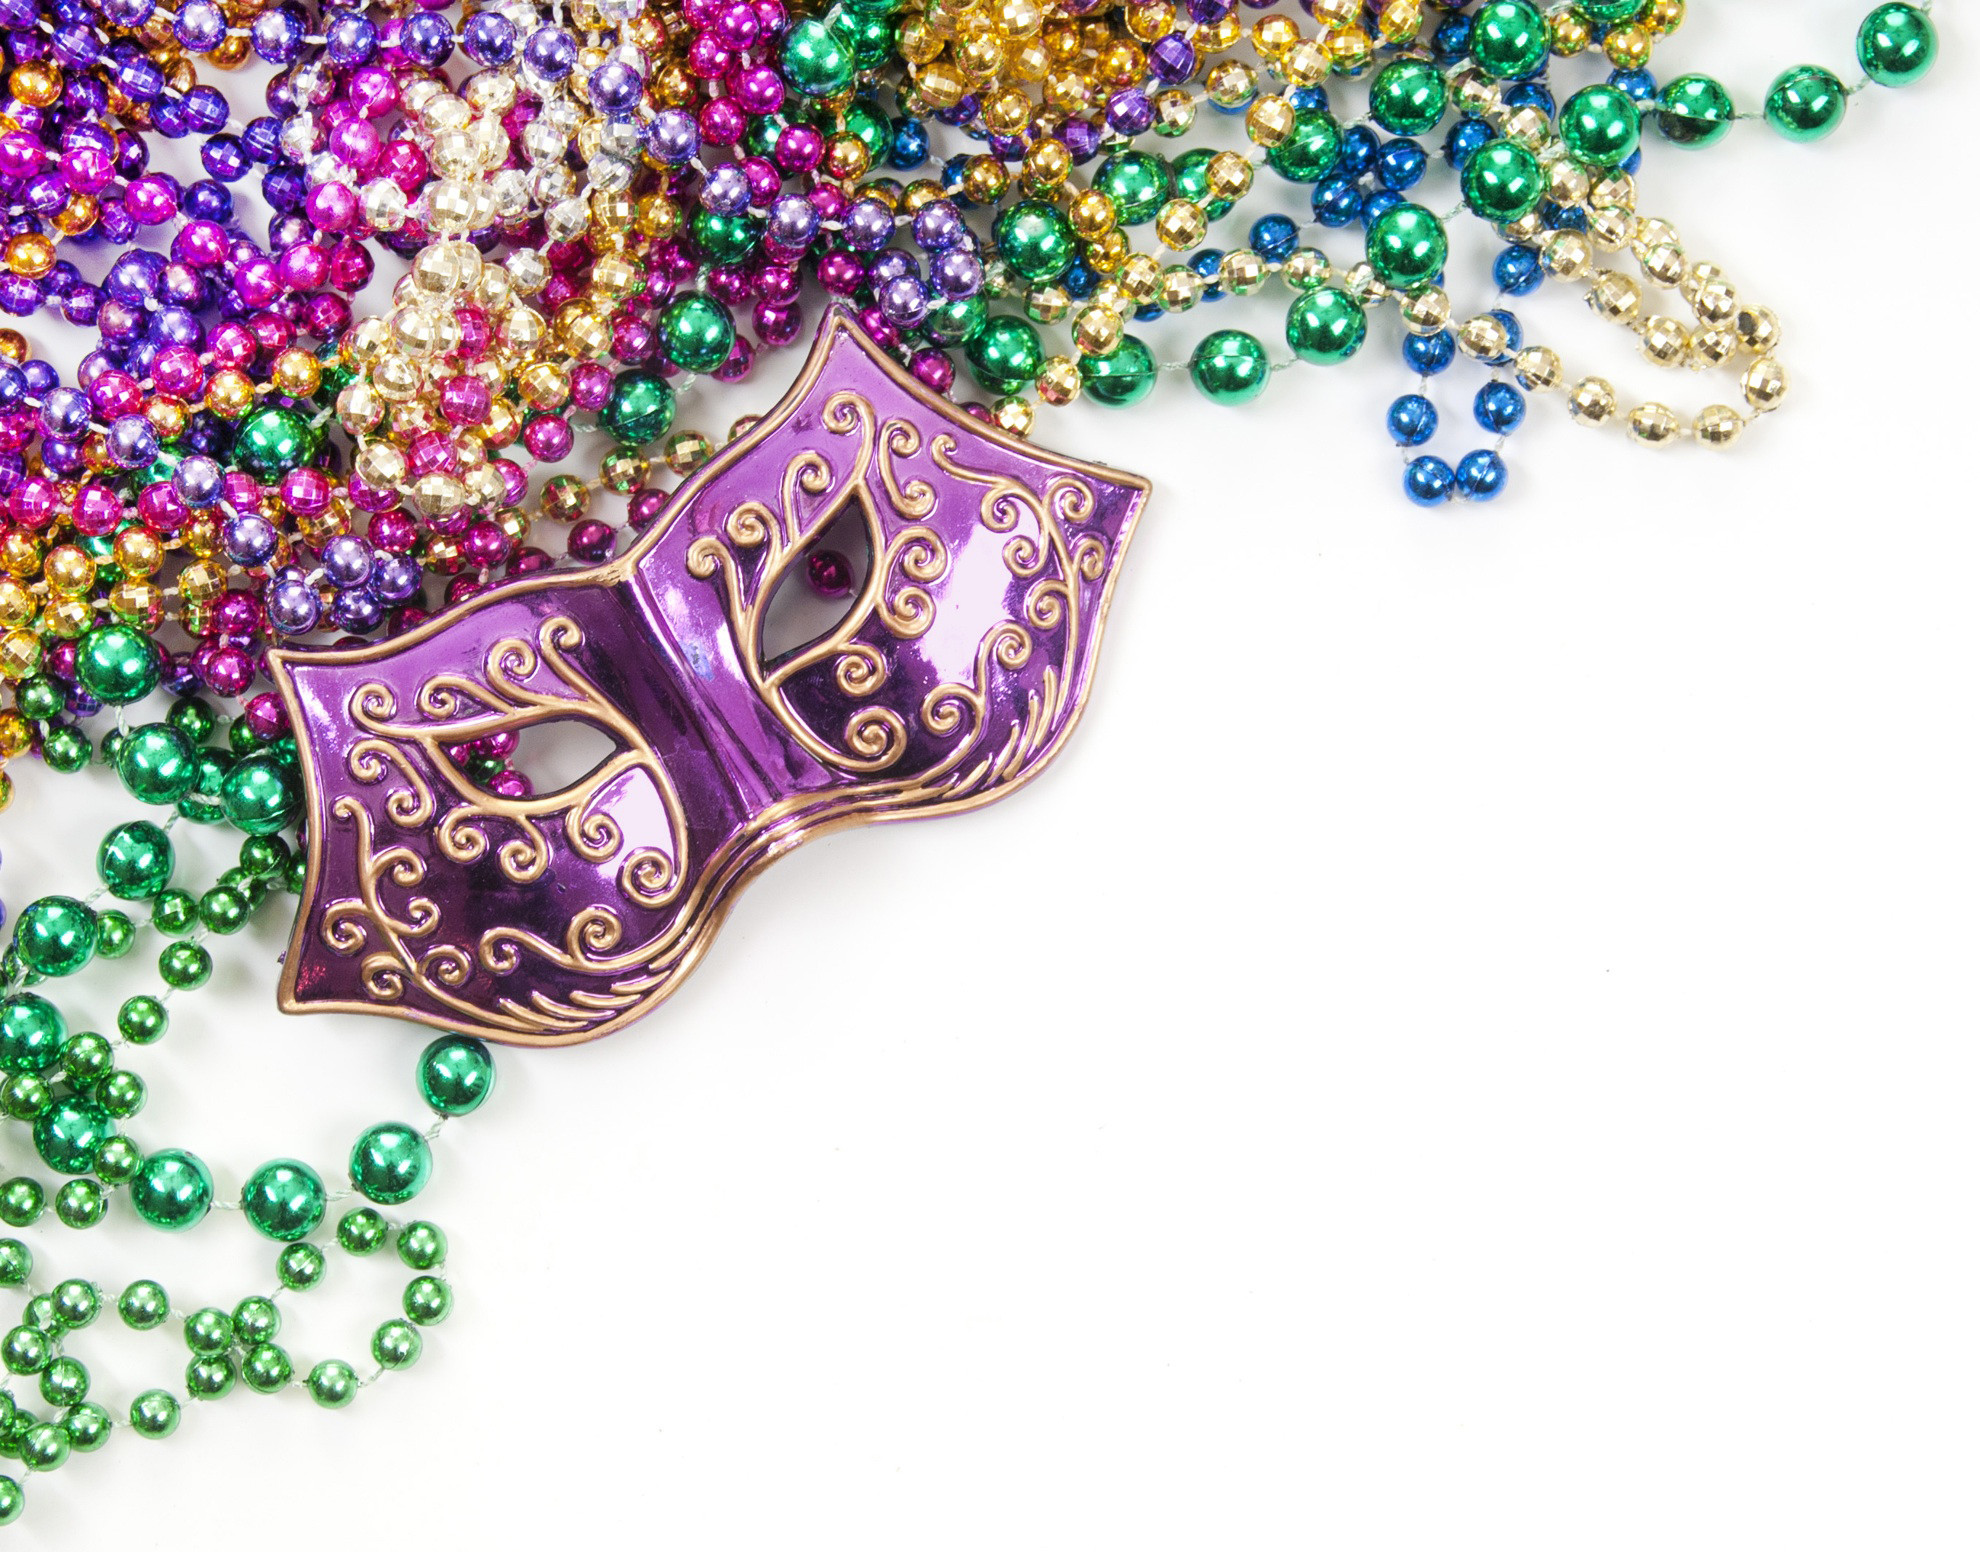 mardi gras desktop wallpaper (65+ images)